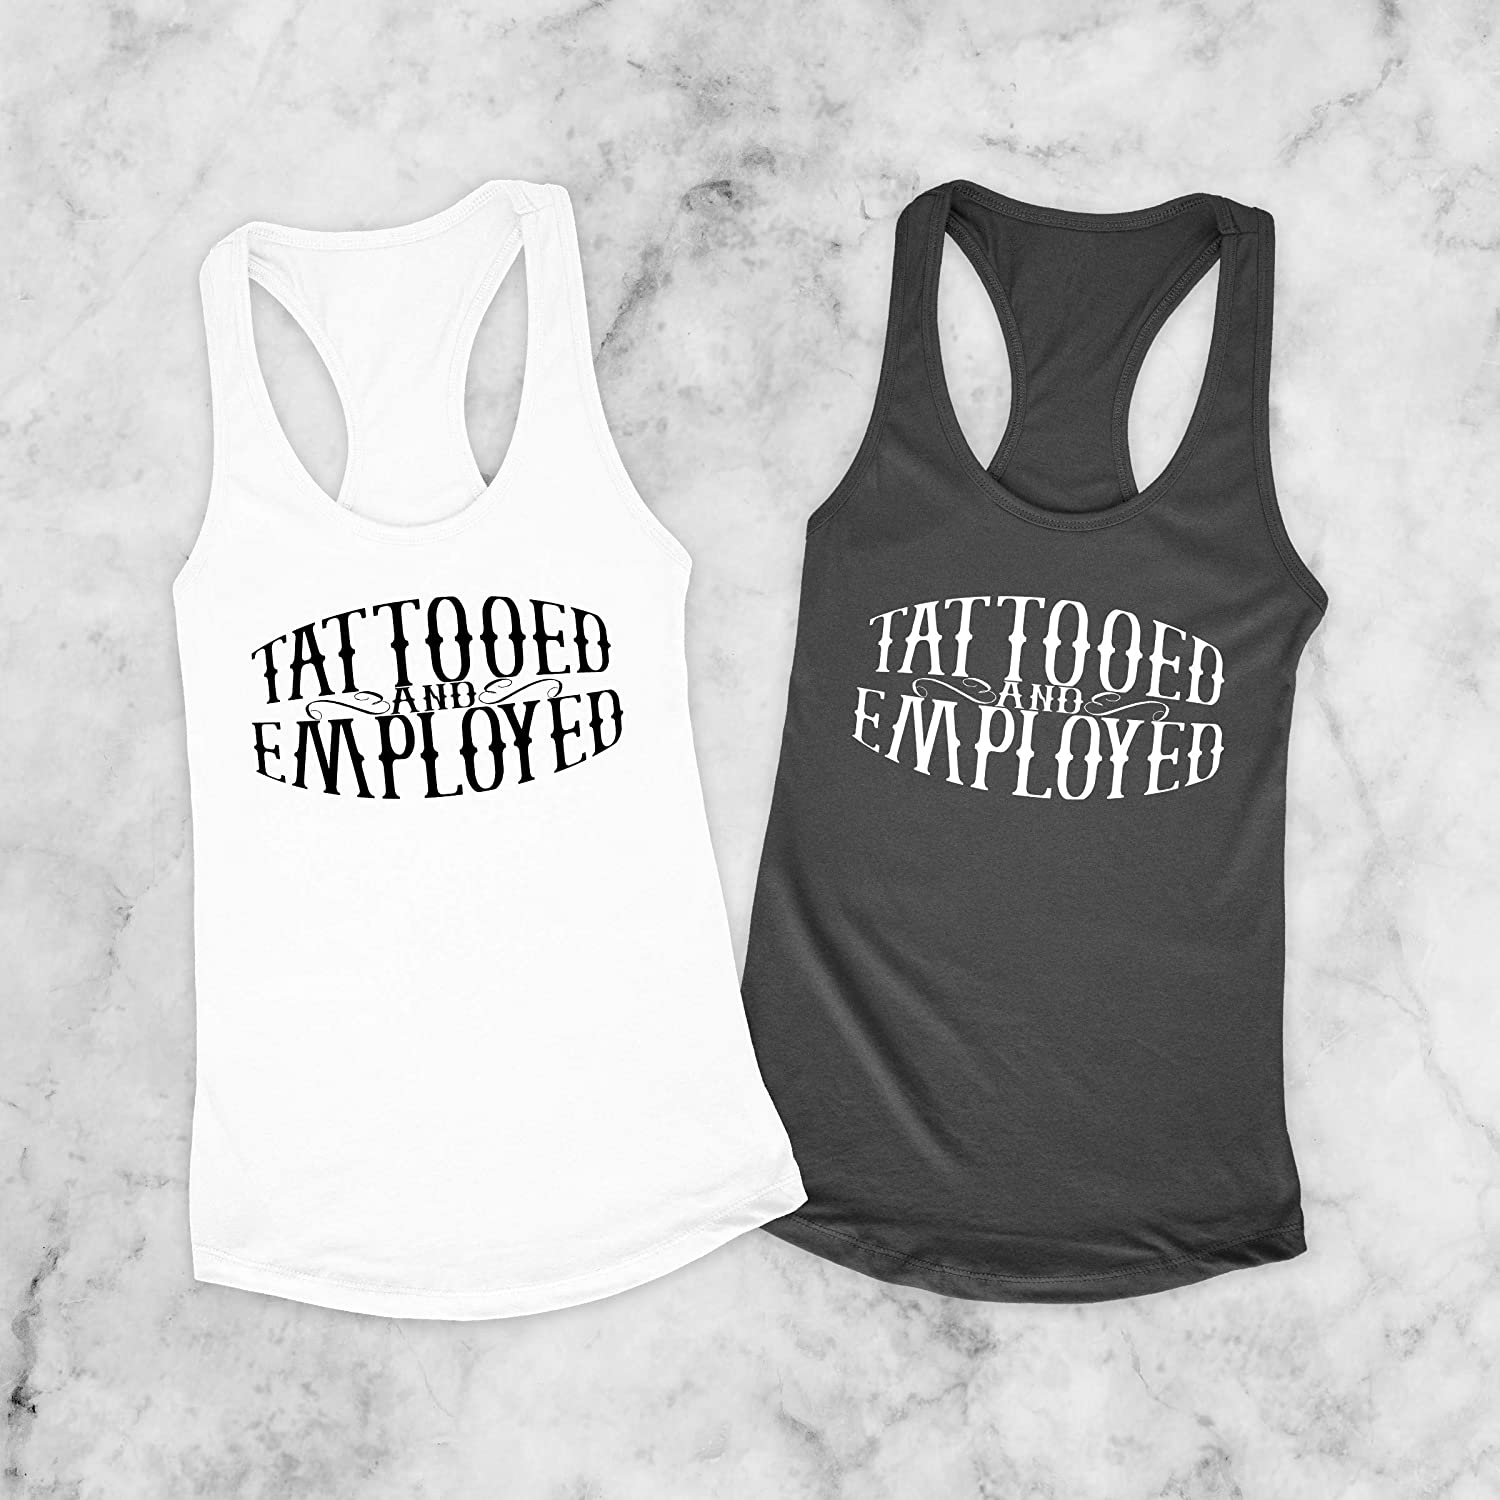 Tattooed and Employed Racerback Tank Top For Wife Christmas ideas White Funny Shirt Gifts for Her Inked NLTT0002 Black